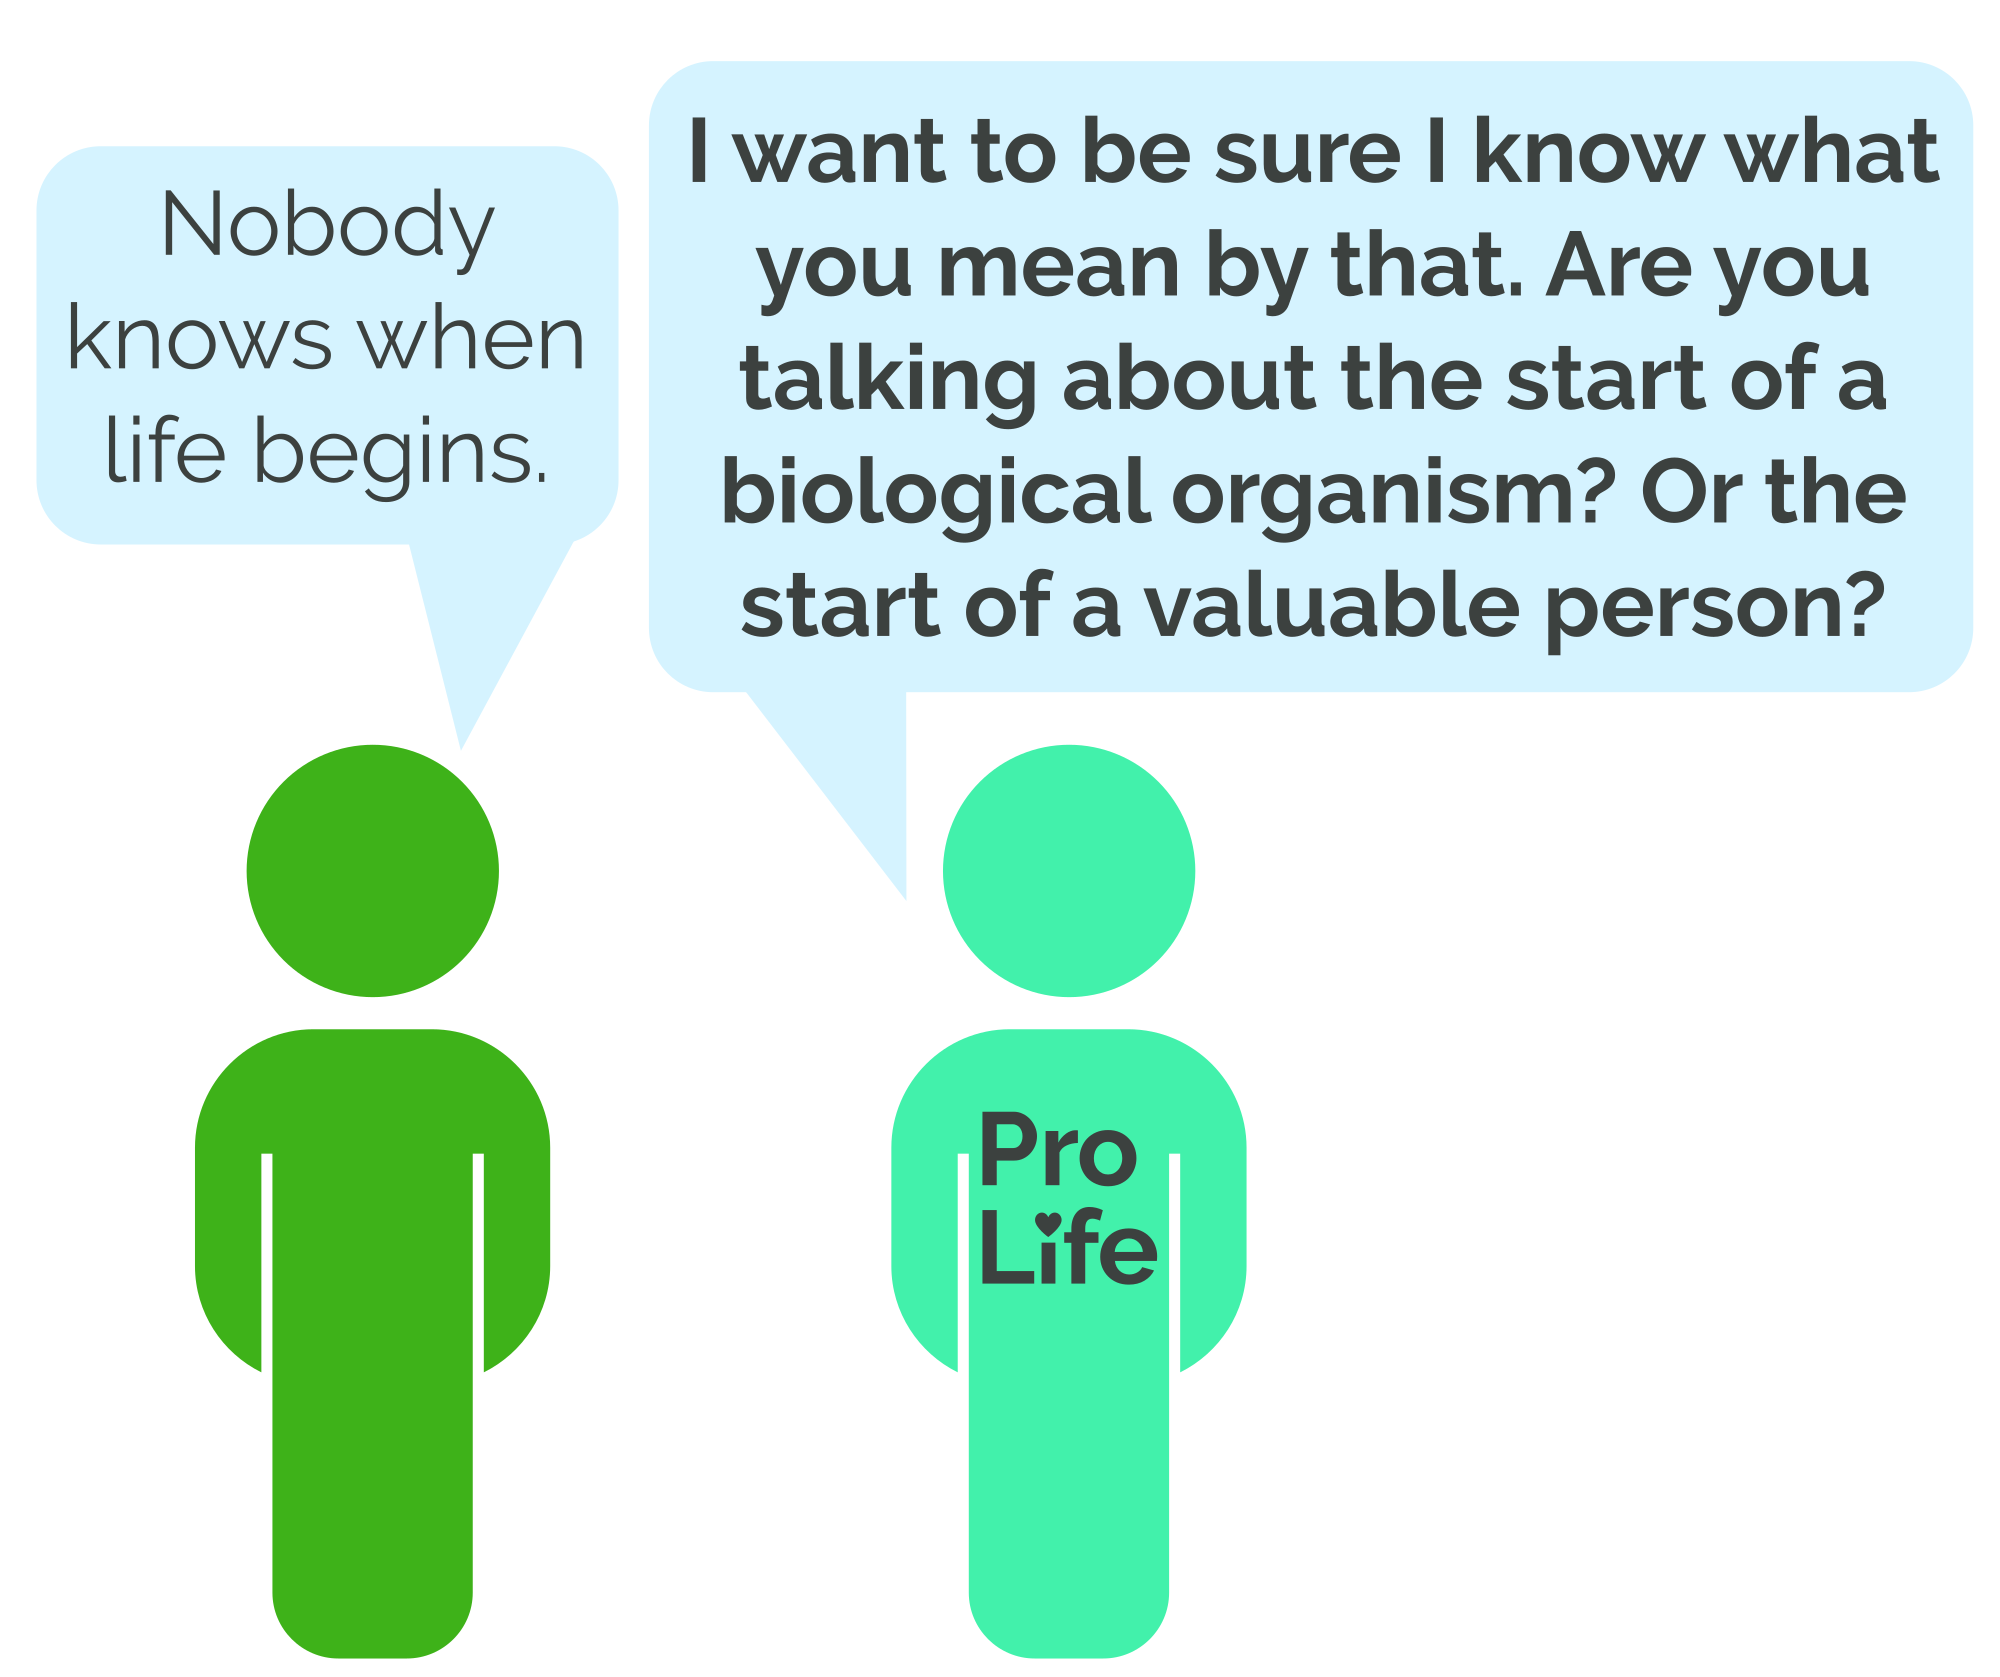 Person 1: Nobody knows when life begins. Person 2 (our hero): I want to be sure I know what you mean by that. Are you talking about the start of a biological organism? Or the start of a valuable person?